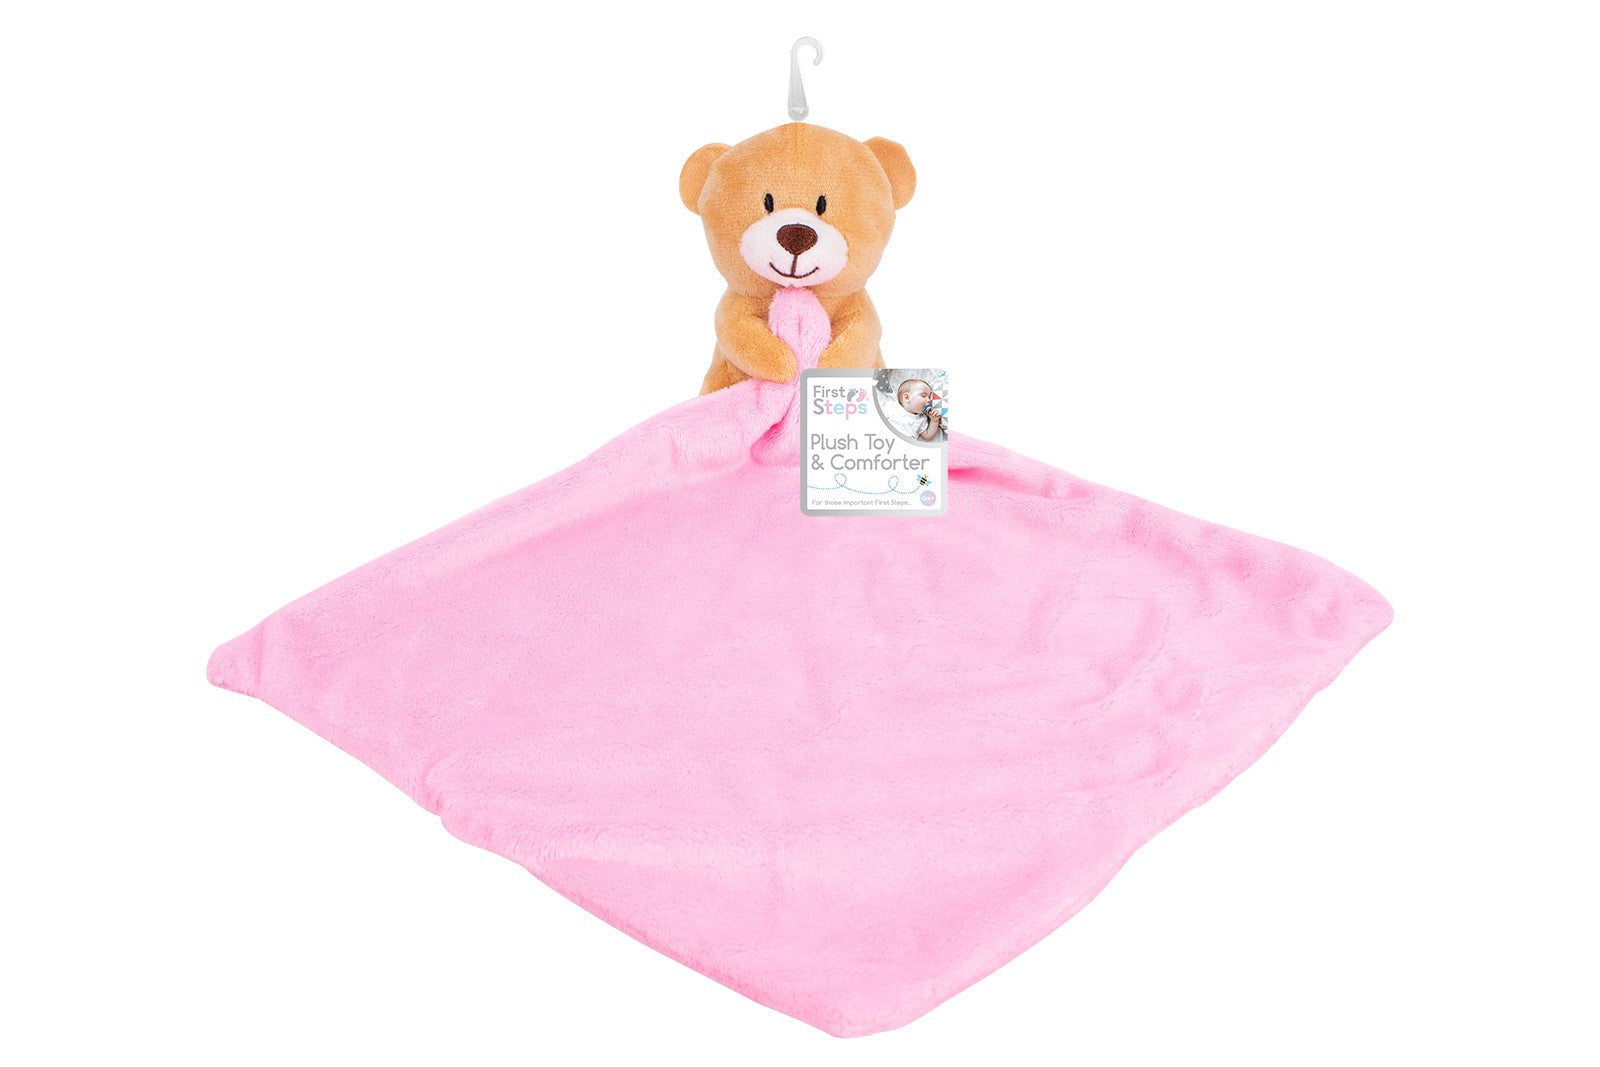 PLUSH TOY AND COMFORTER BLANKET FS790